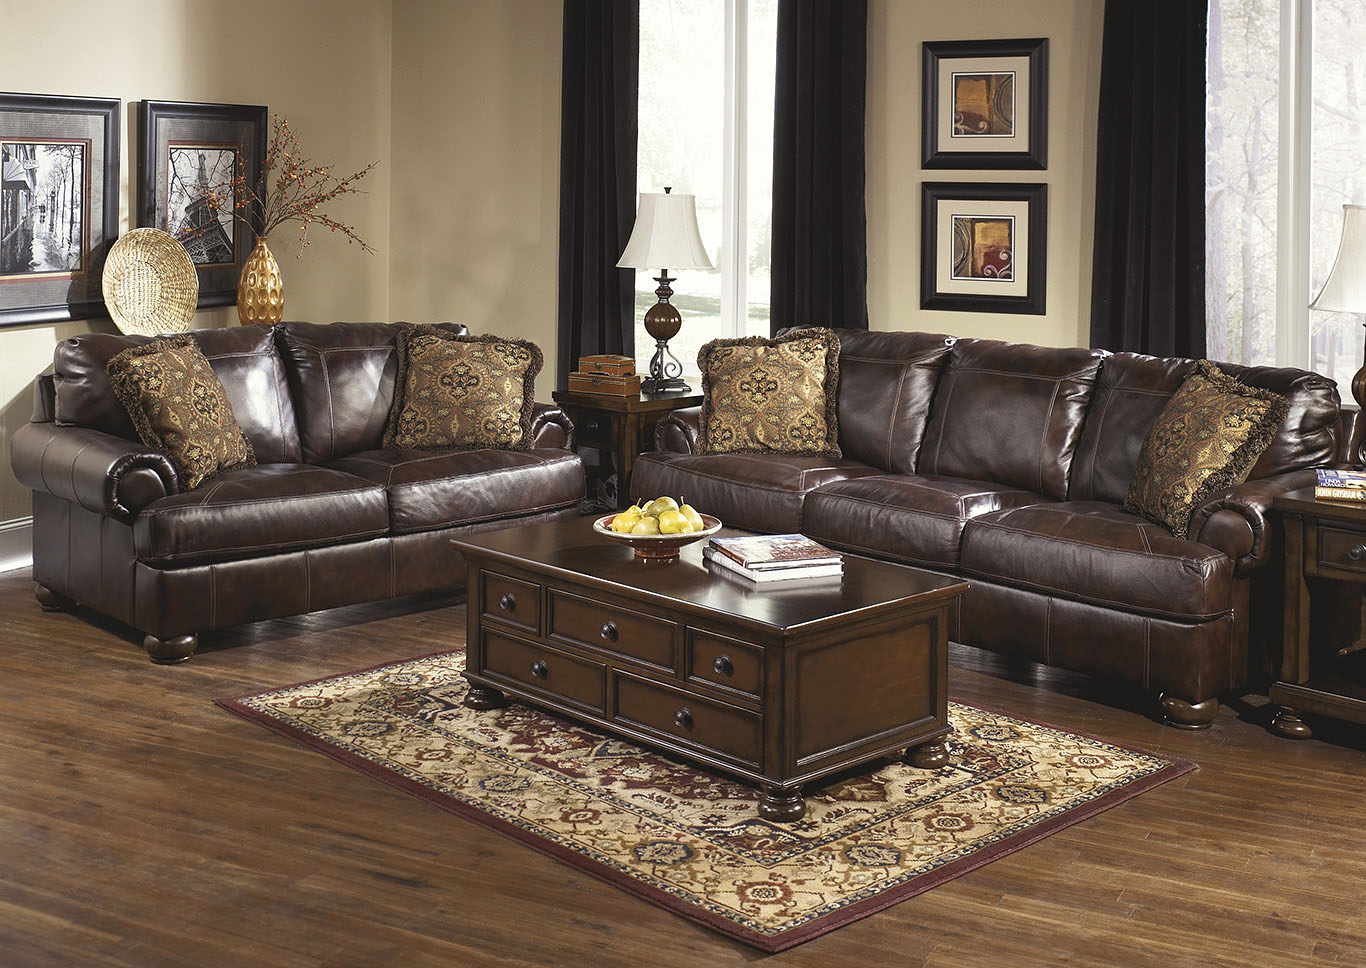 Affordable Furniture Houston TX